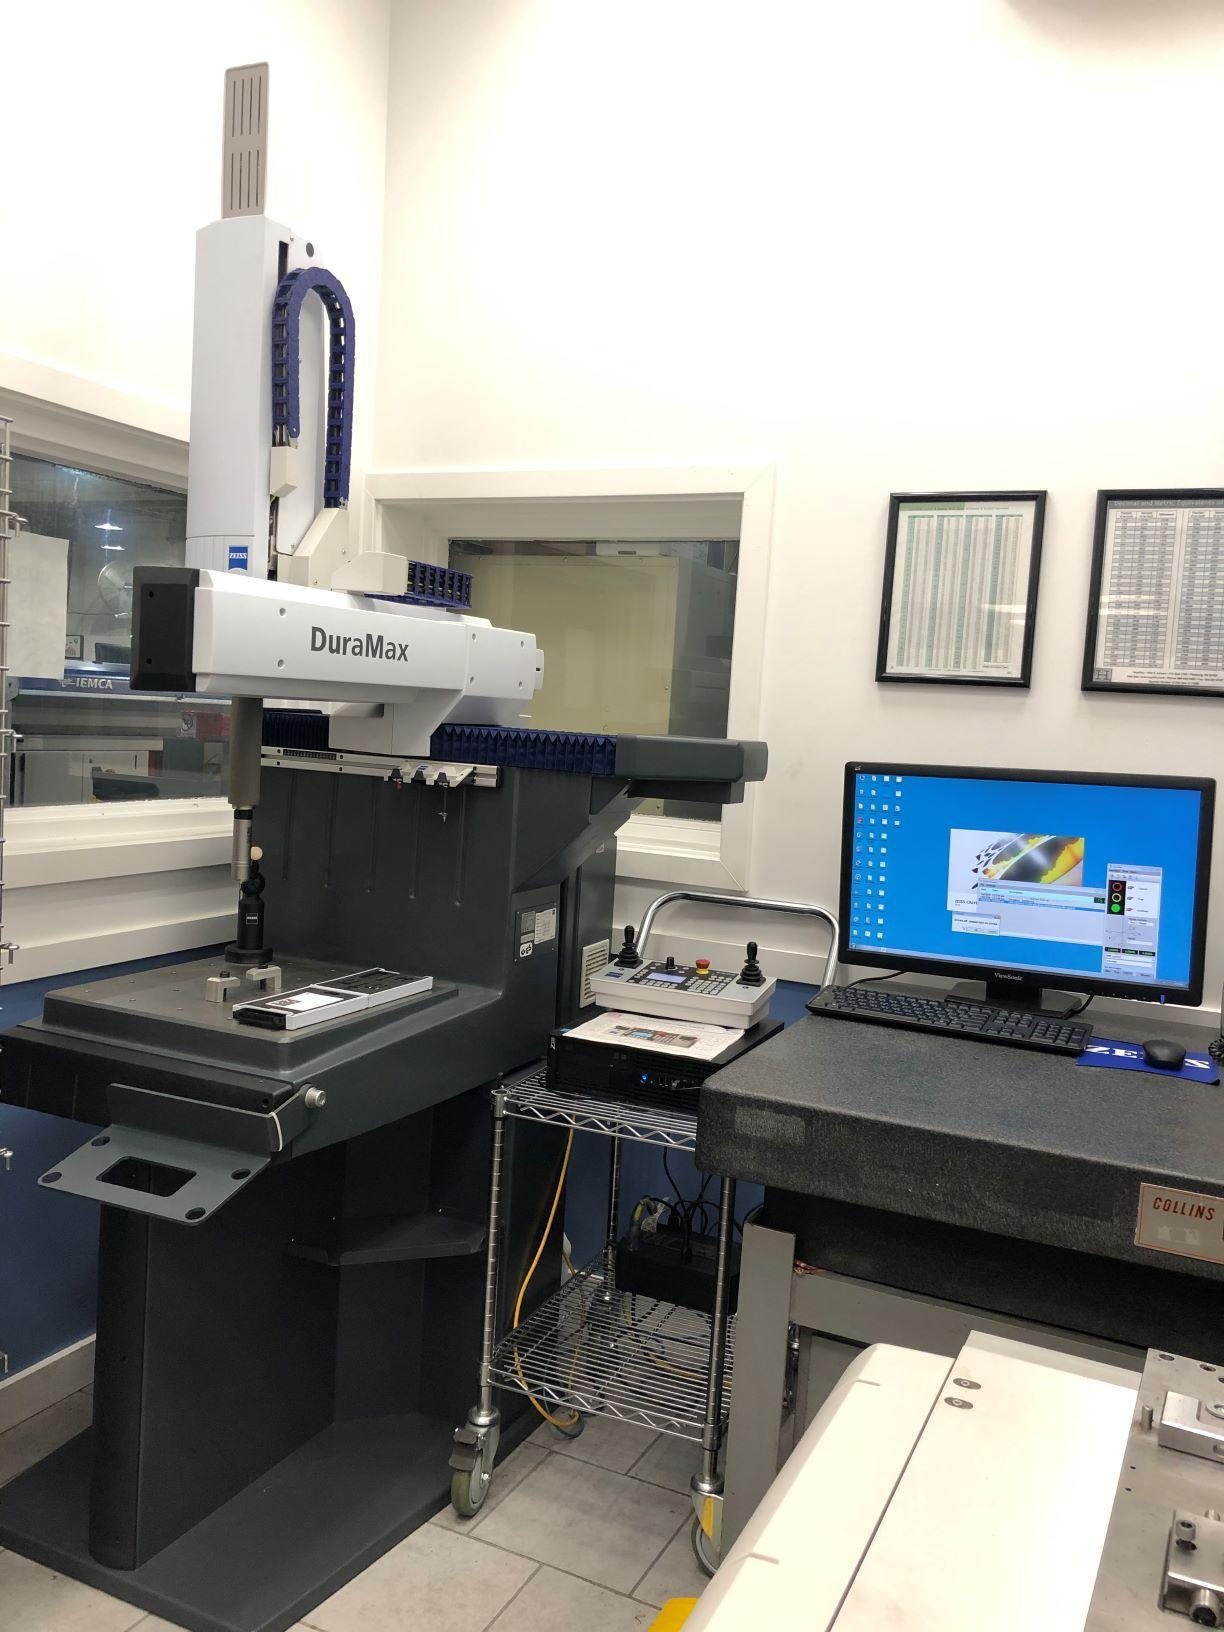 Zeiss Duramax 5/5/5 Coordinate Measuring Machine (CMM), Vast XXT TL3 scanning probe head